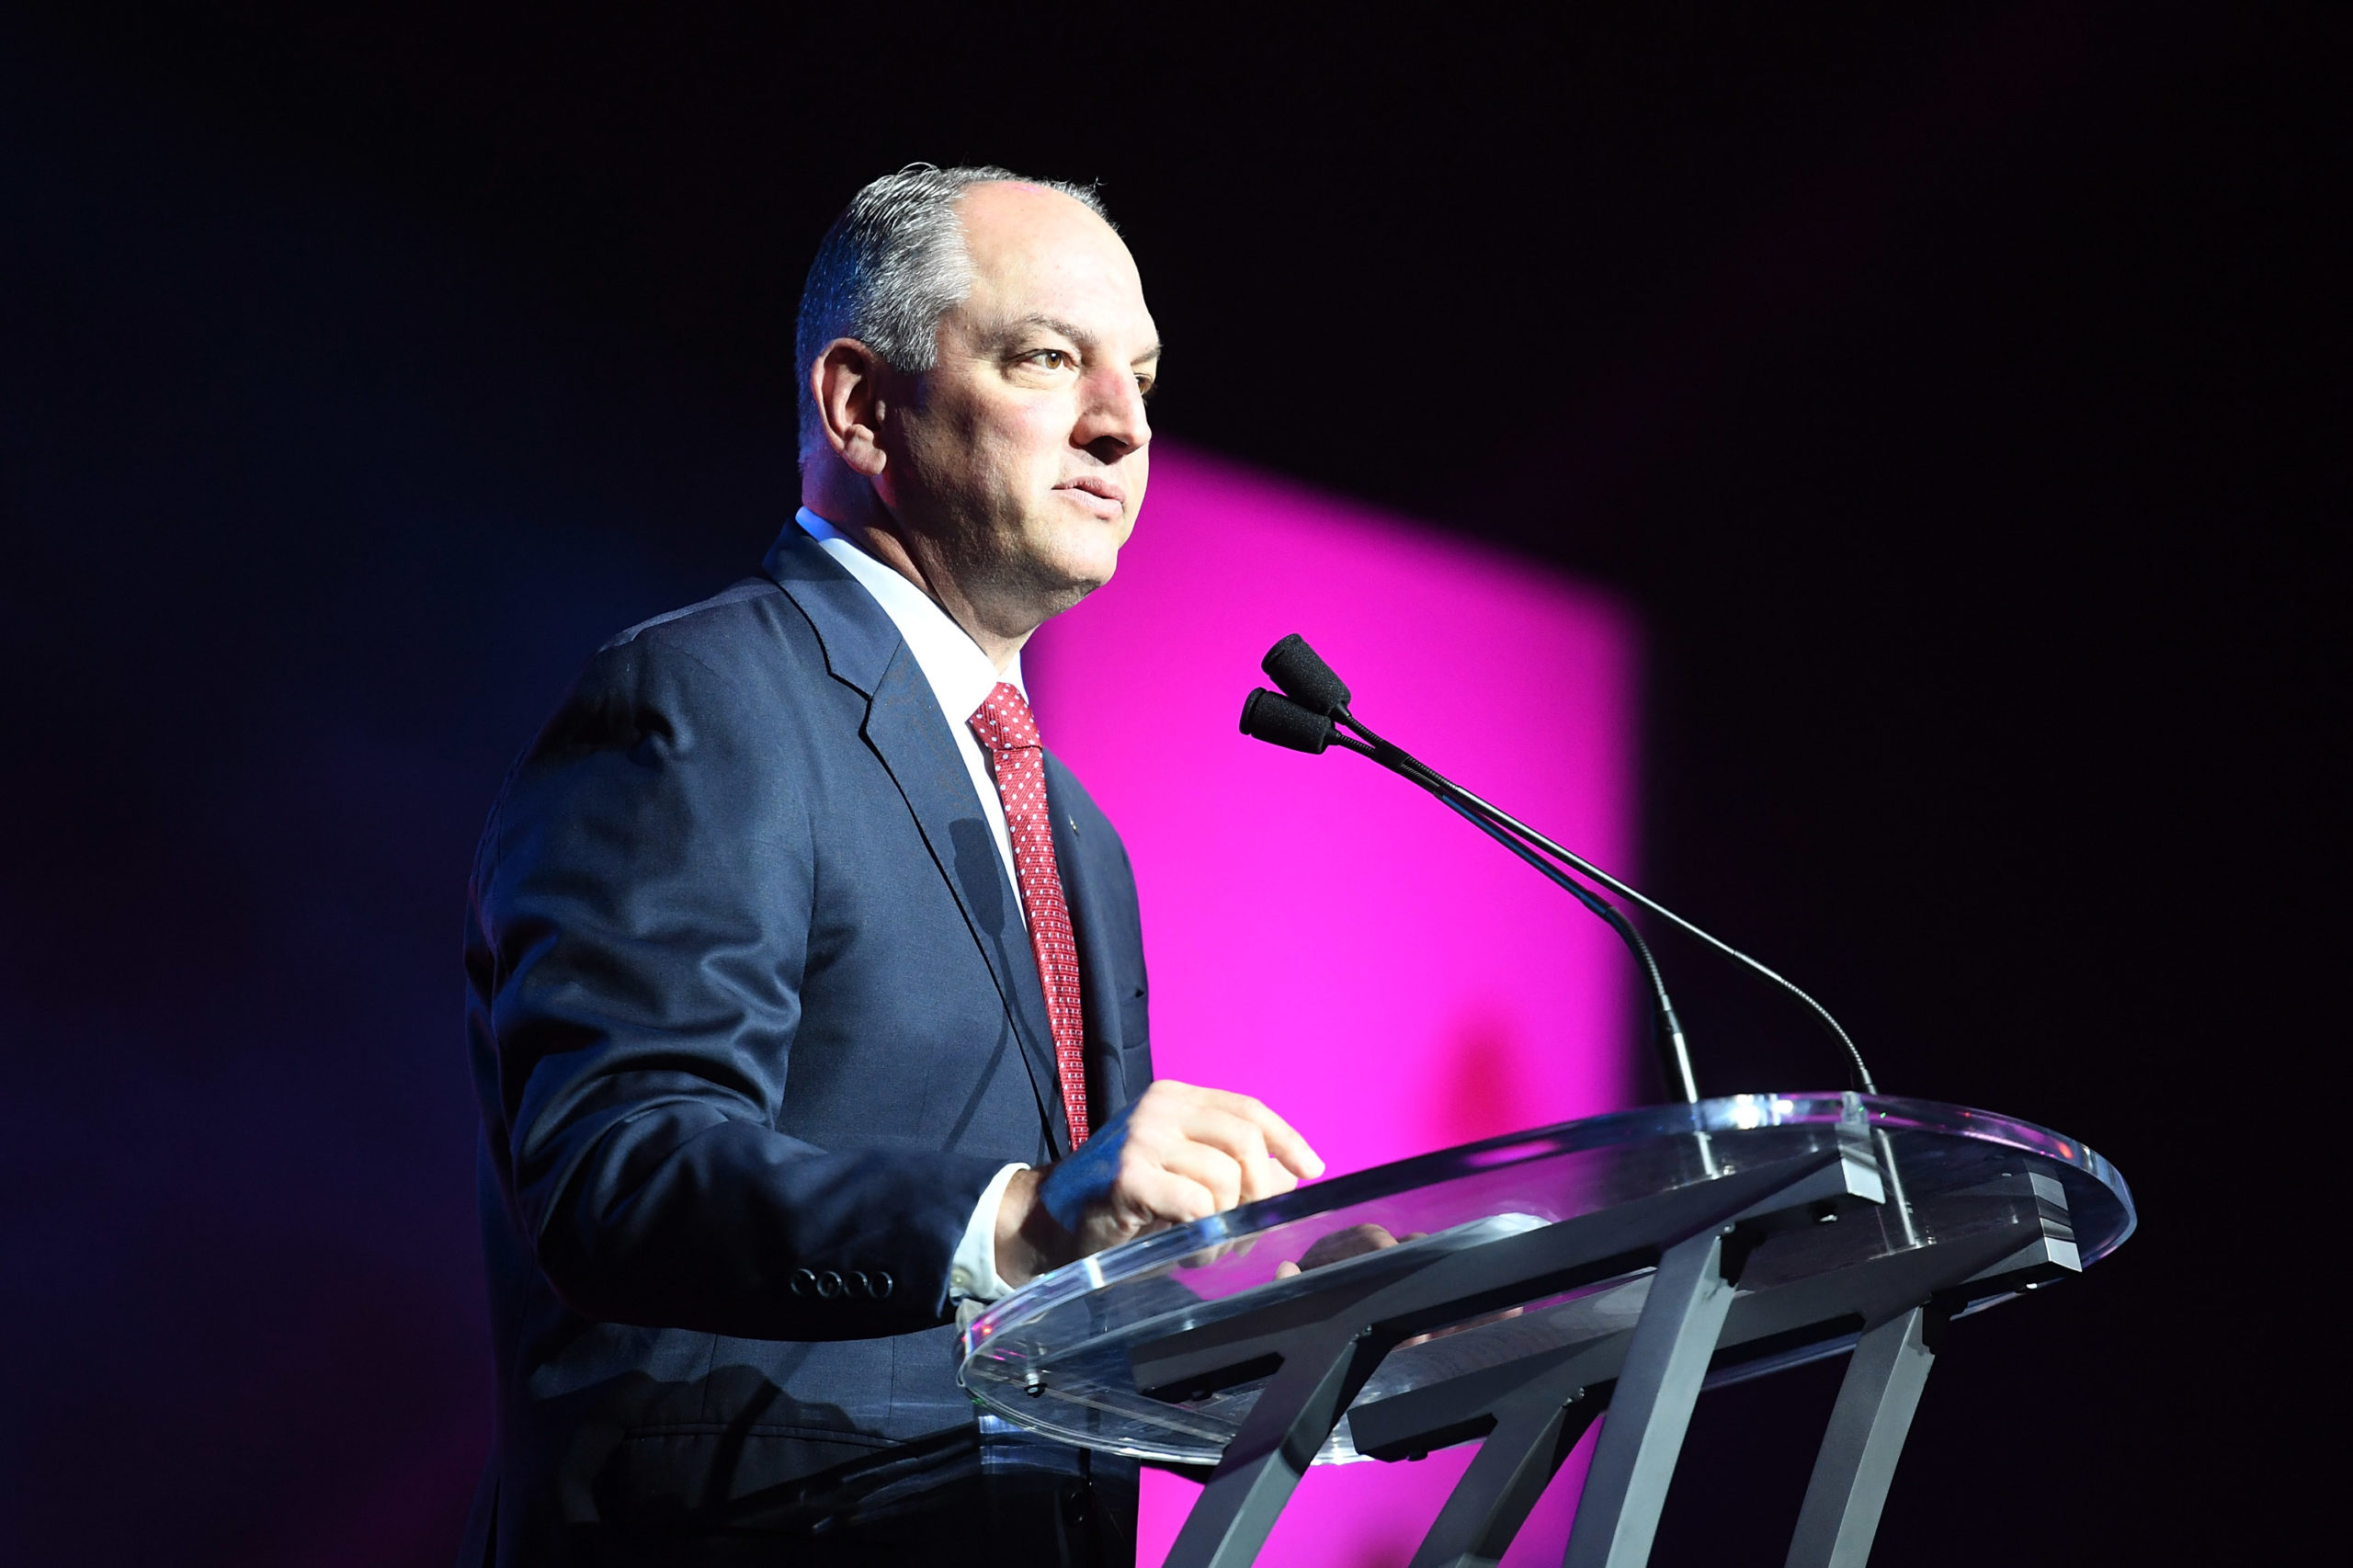 Governor John Bel Edwards speaks onstage at the 2017 ESSENCE Festival presented by Coca-Cola at Ernest N. Morial Convention Center on June 30, 2017 in New Orleans, Louisiana. (Photo by Paras Griffin/Getty Images for 2017 ESSENCE Festival)